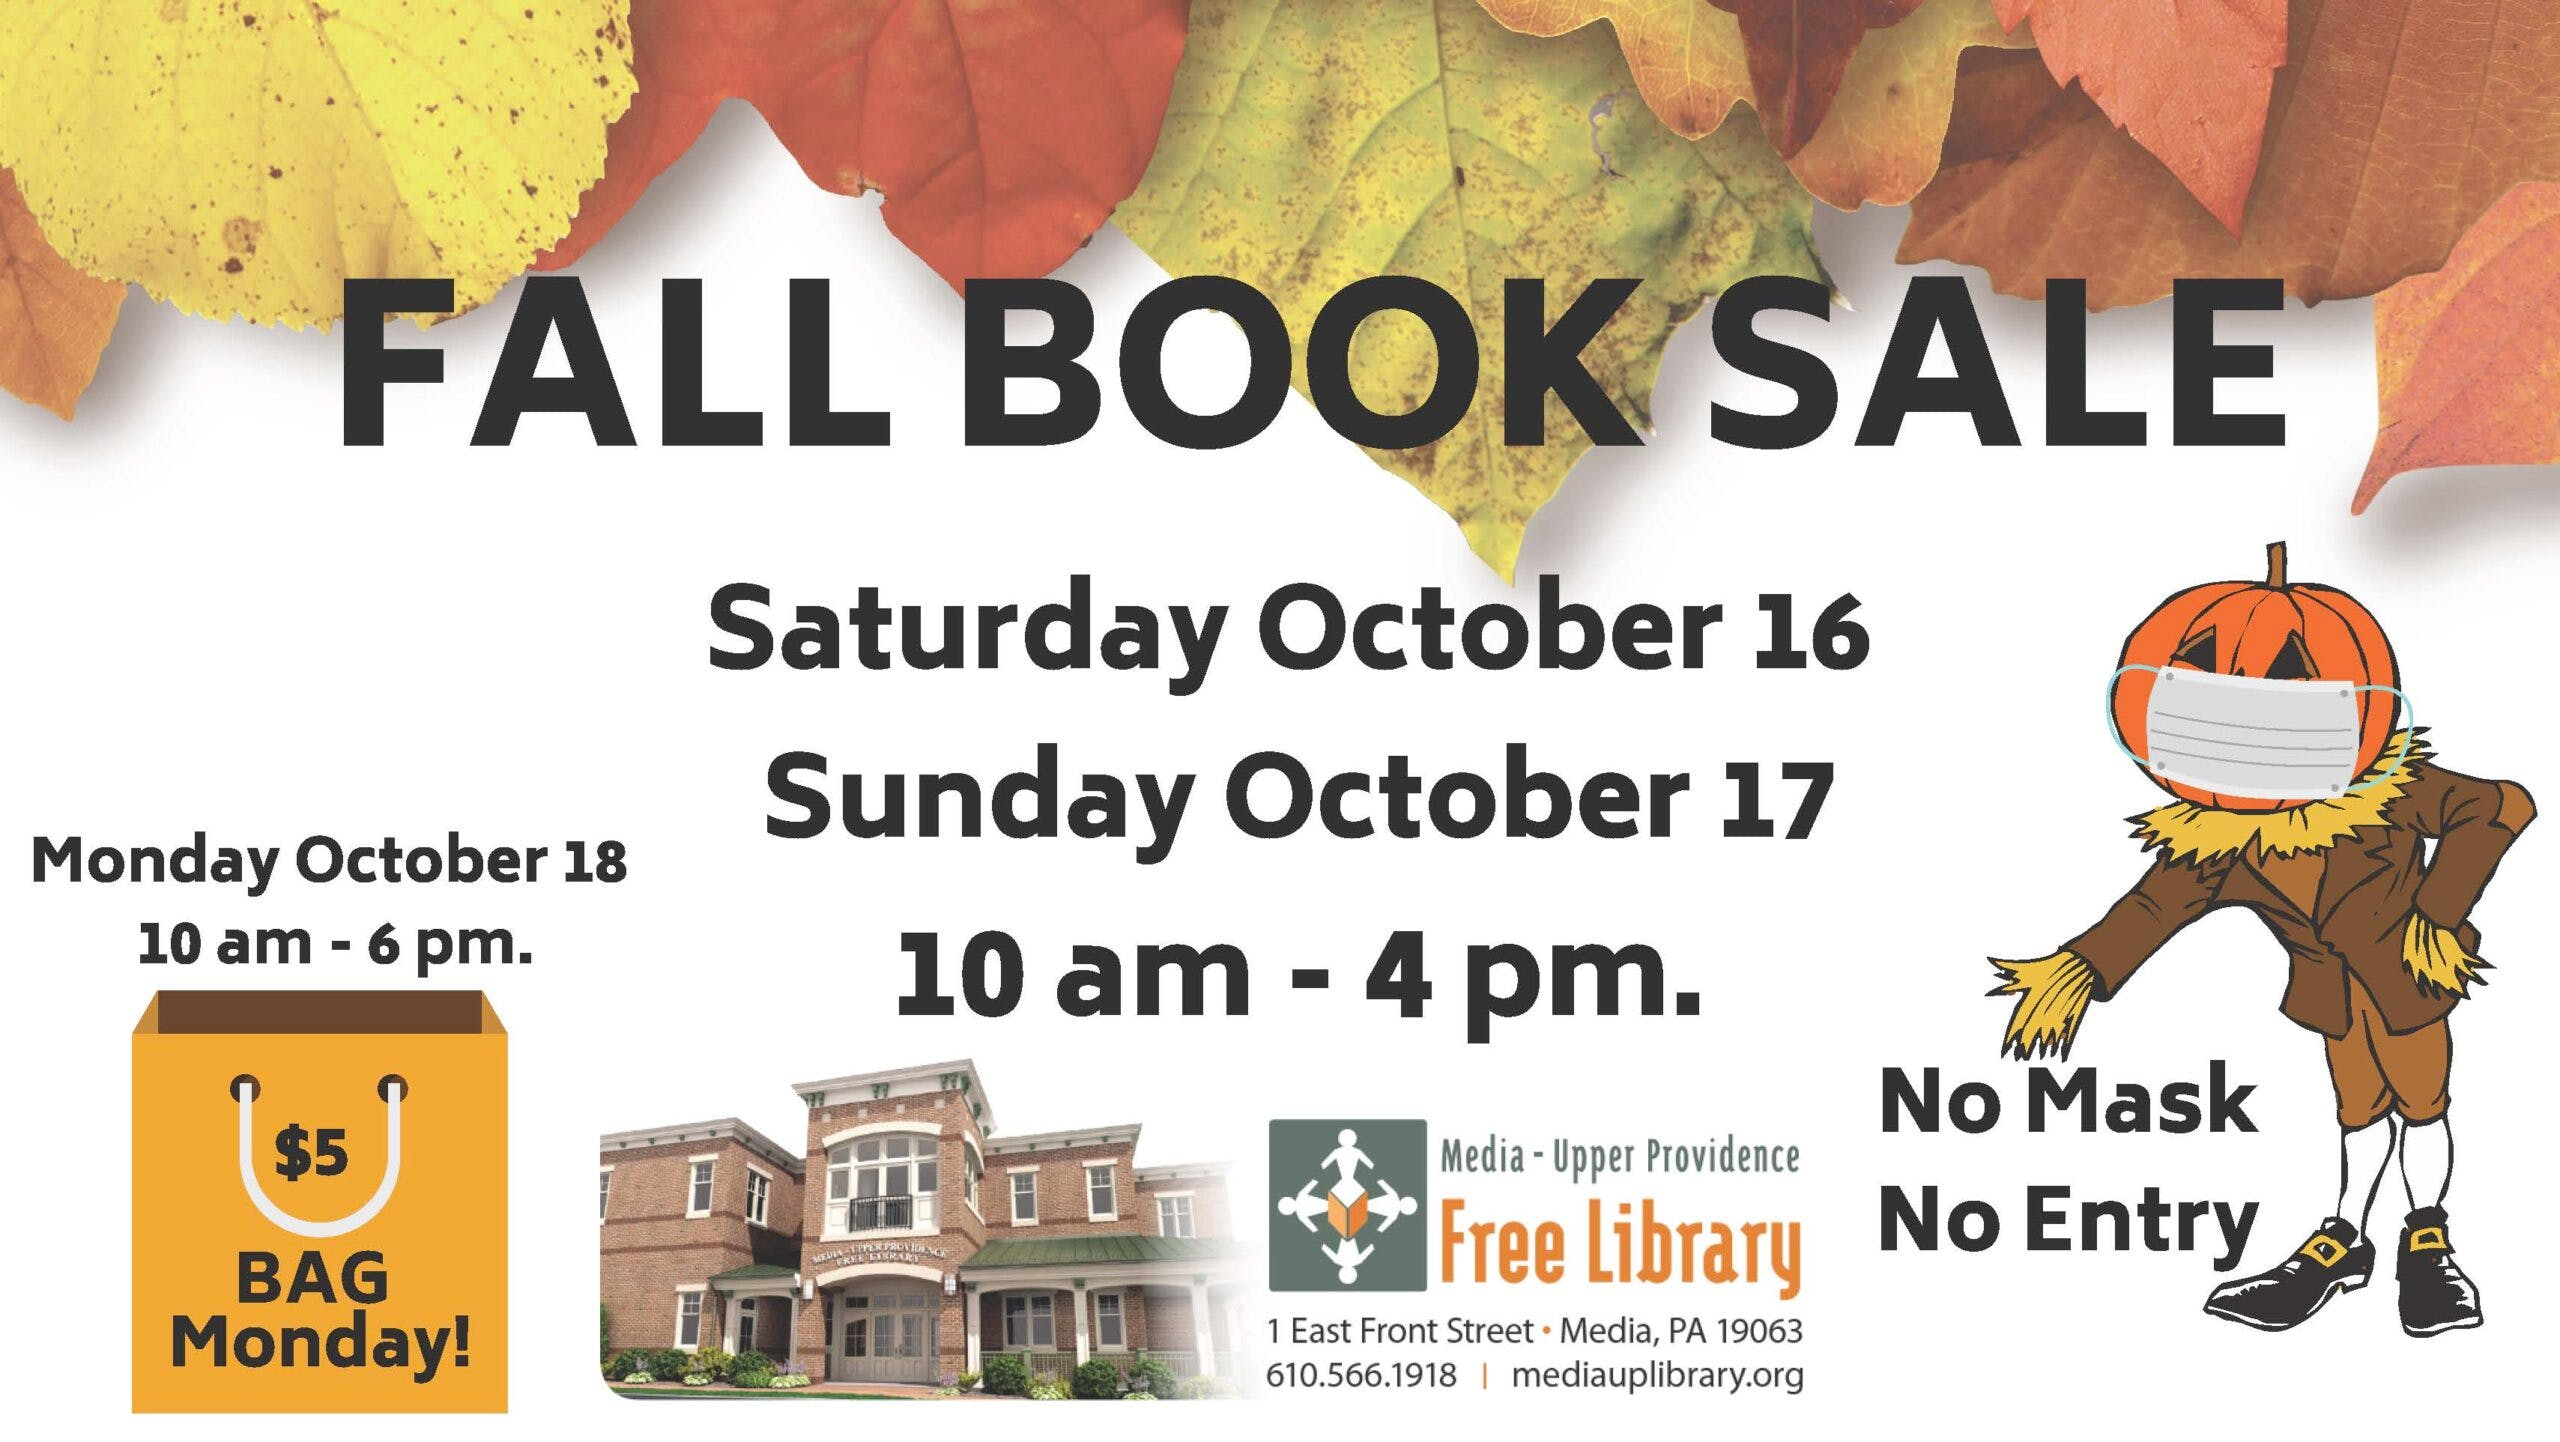 FALL BOOK SALE is ON!